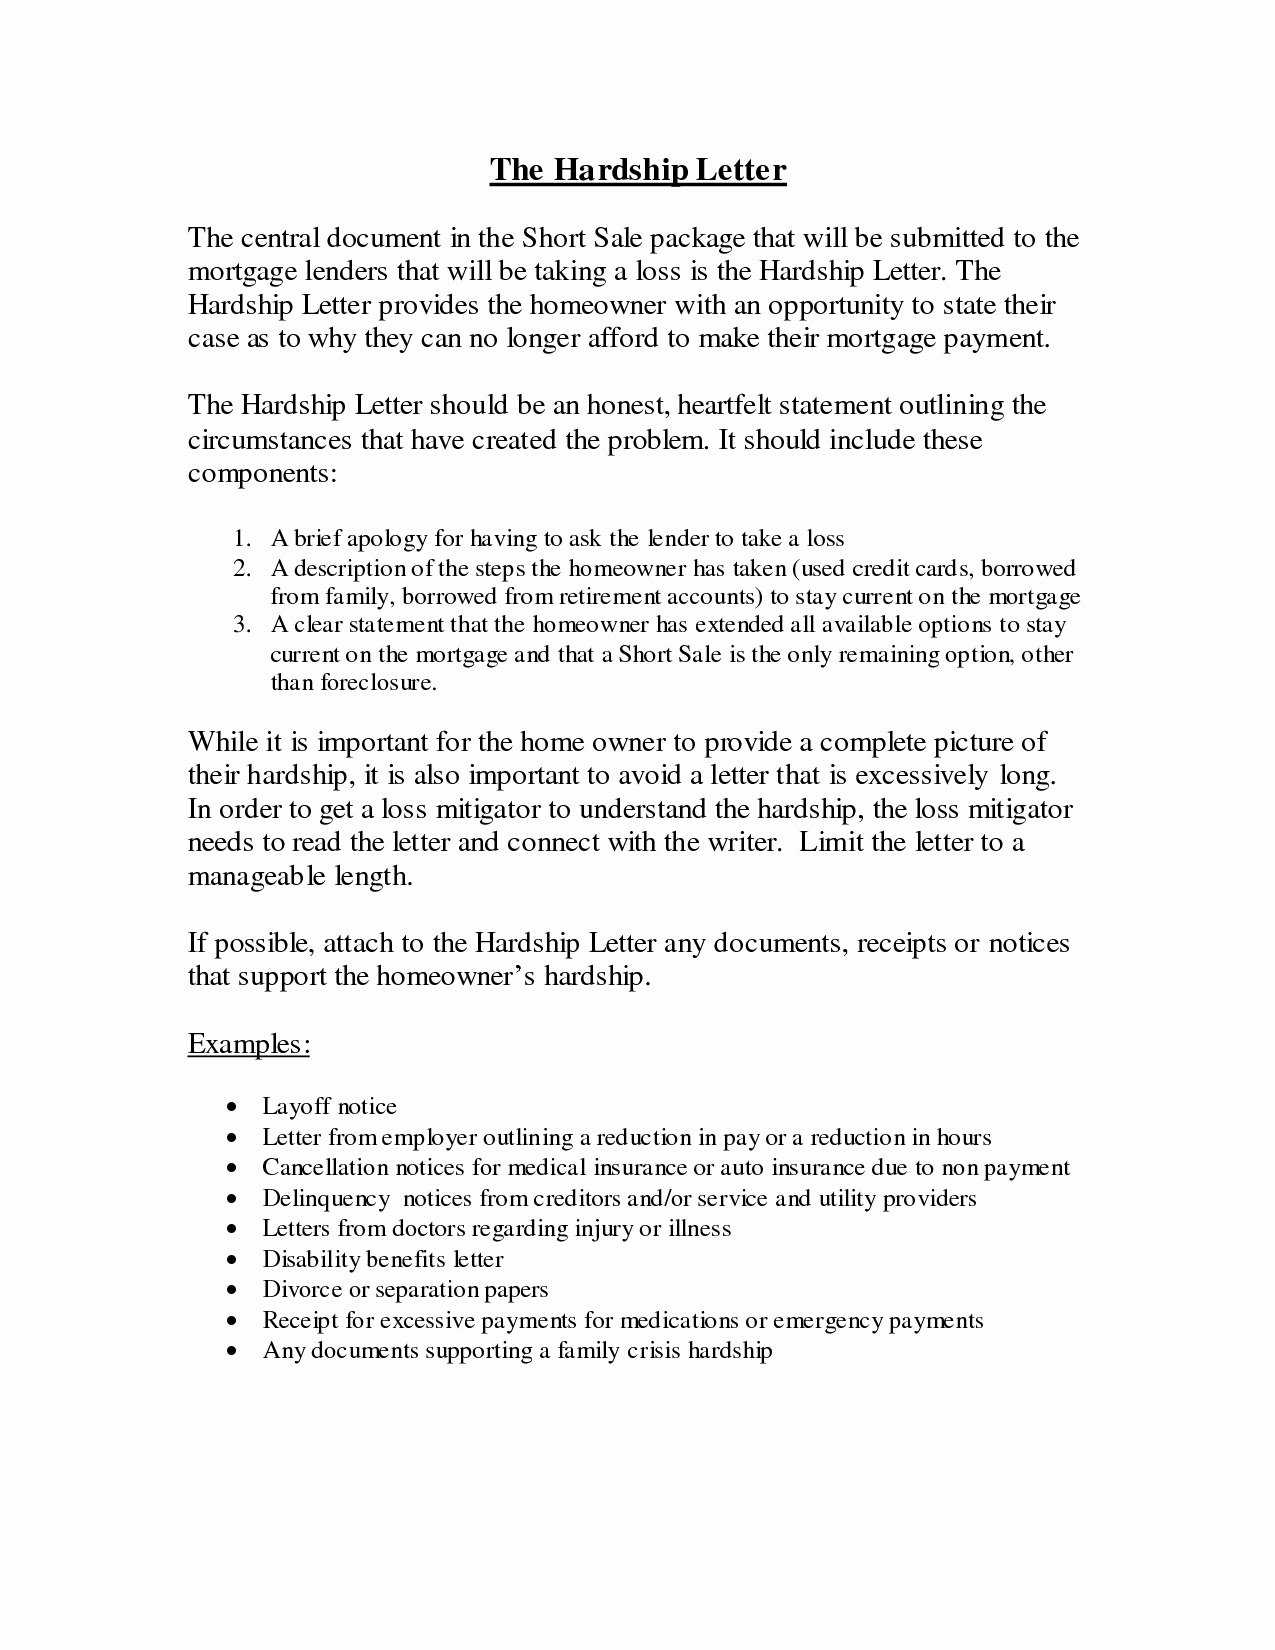 Mortgage Hardship Letter Template - How to Write A Hardship Letter for Immigration for A Friend Unique